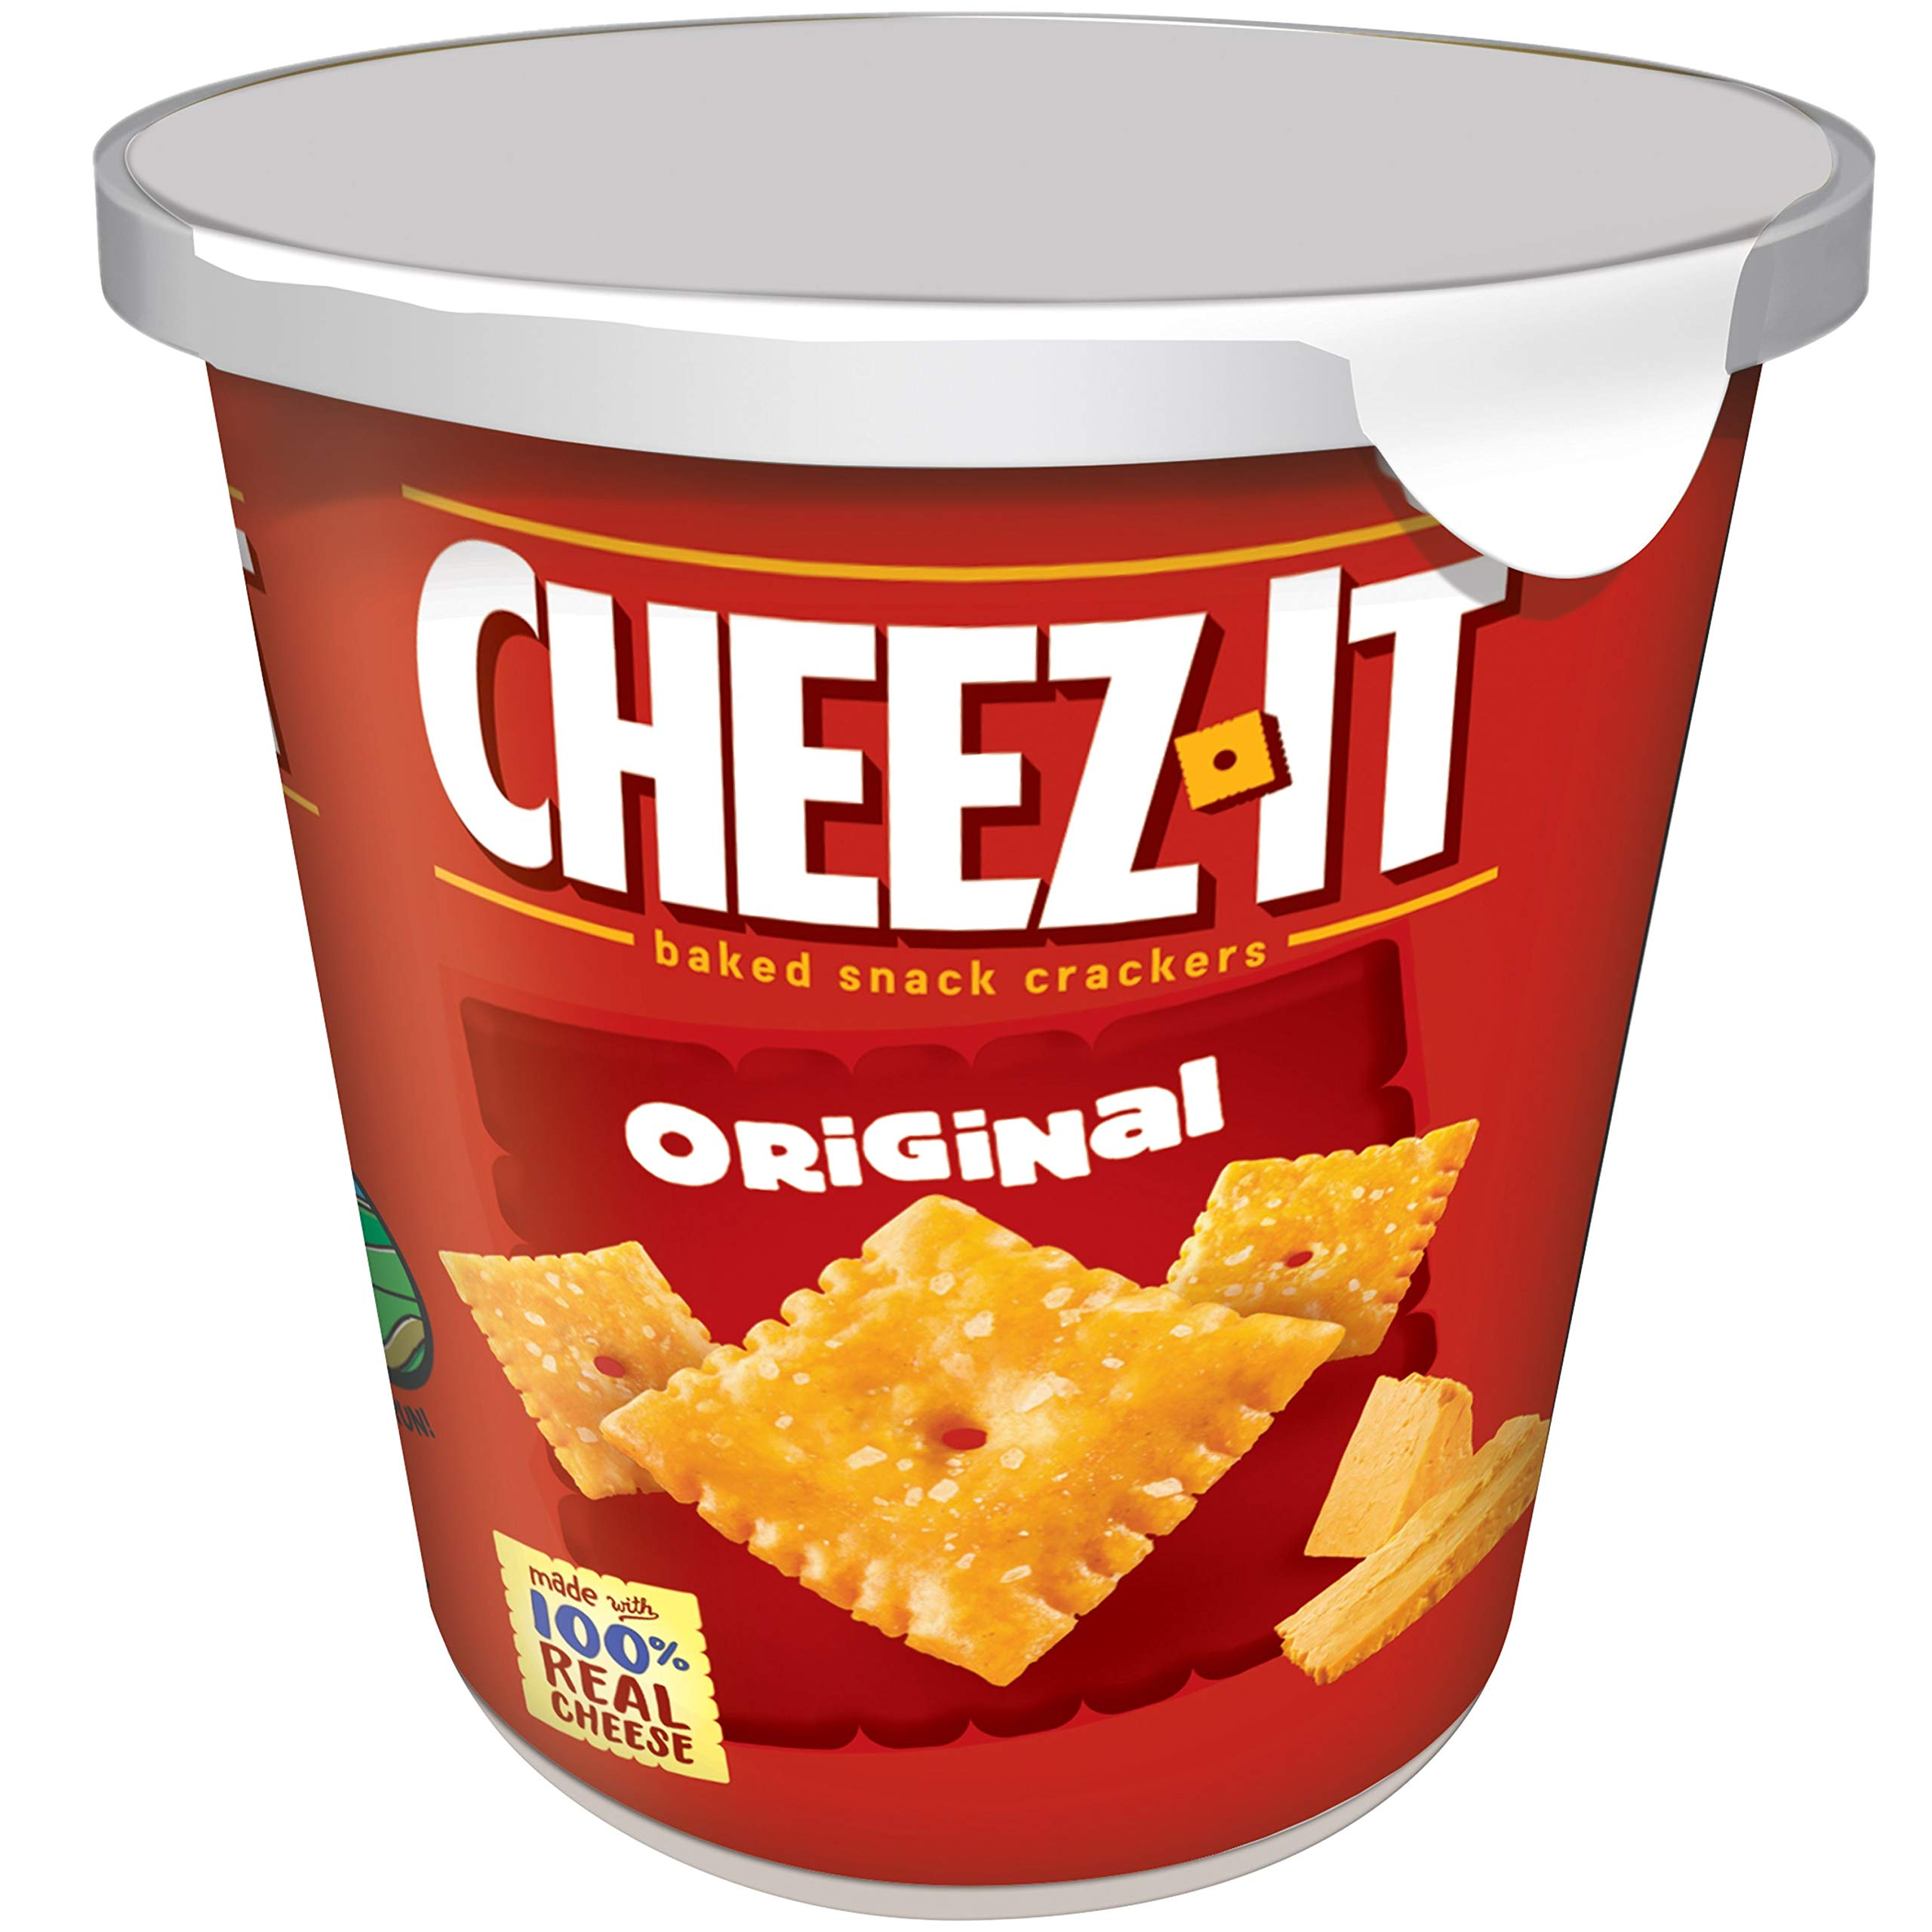 Cheez-It Baked Snack Cheese Crackers in a Cup, Original, Single Serve, 2.2 oz